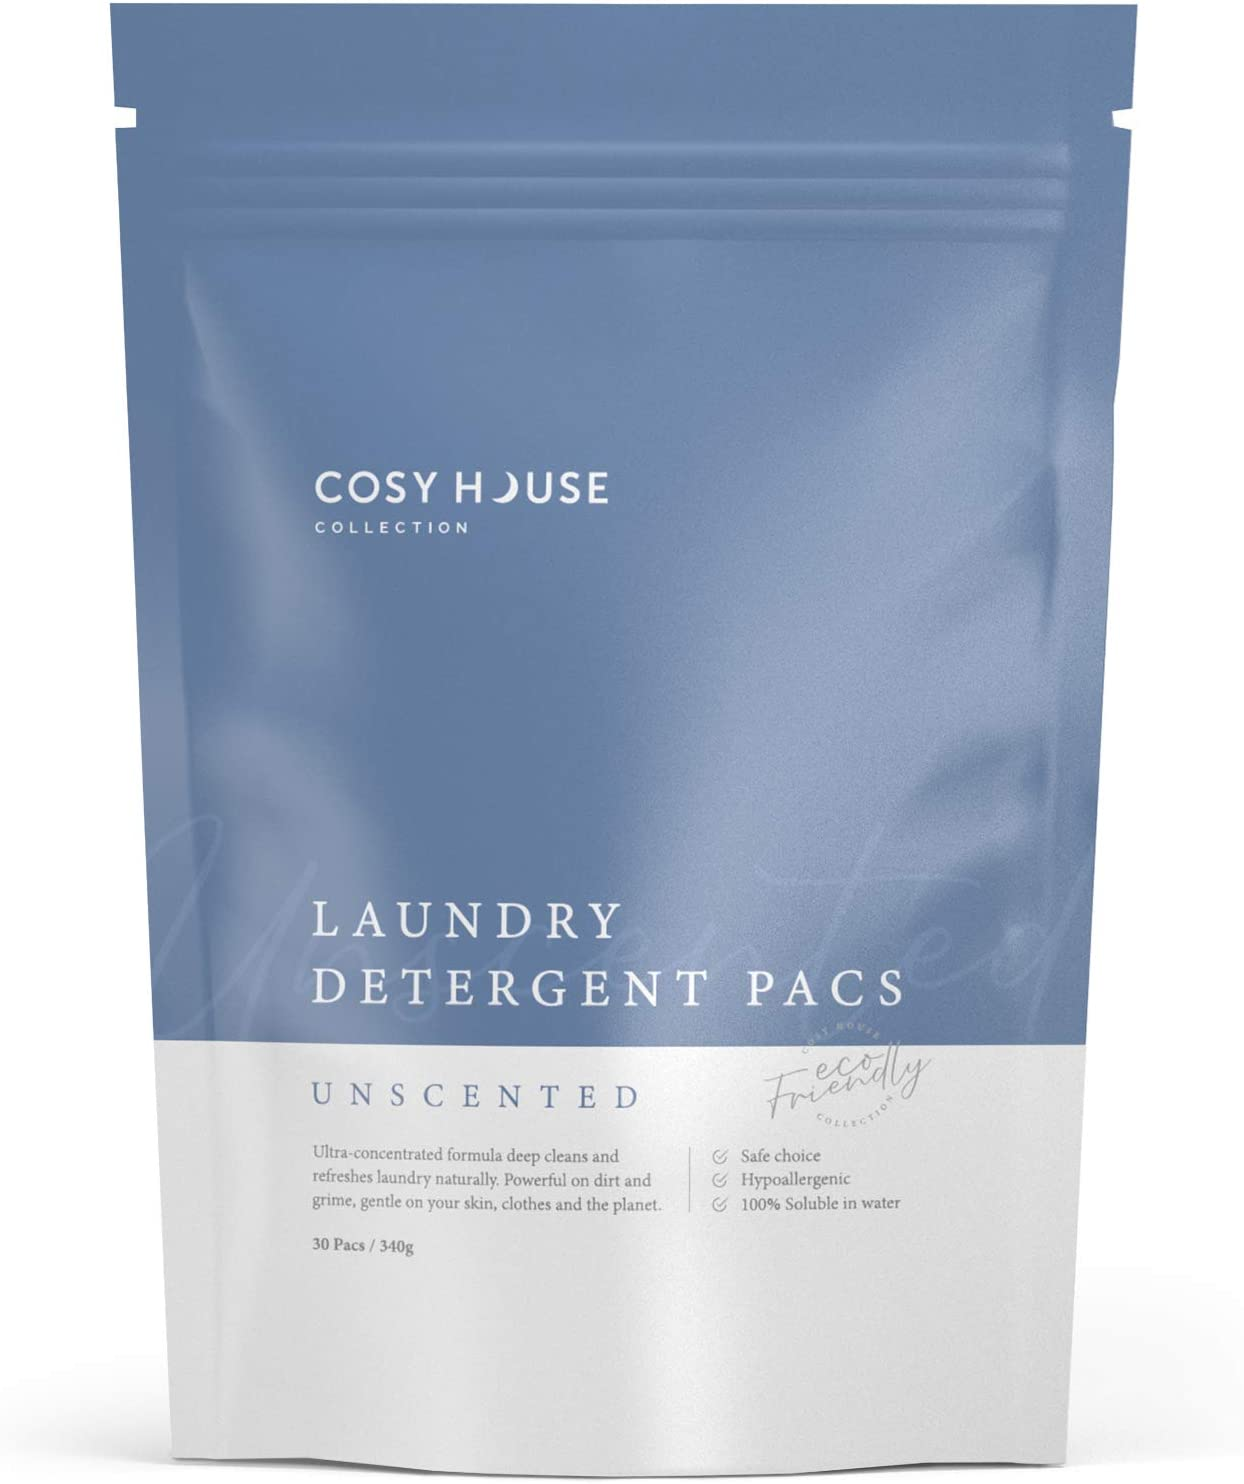 Cosy House Collection Laundry Detergent Pacs - Scent & Dye Free - Non-Irritating Formula - Suitable for all Machine & Fabric types - (Unscented, 30 Count)